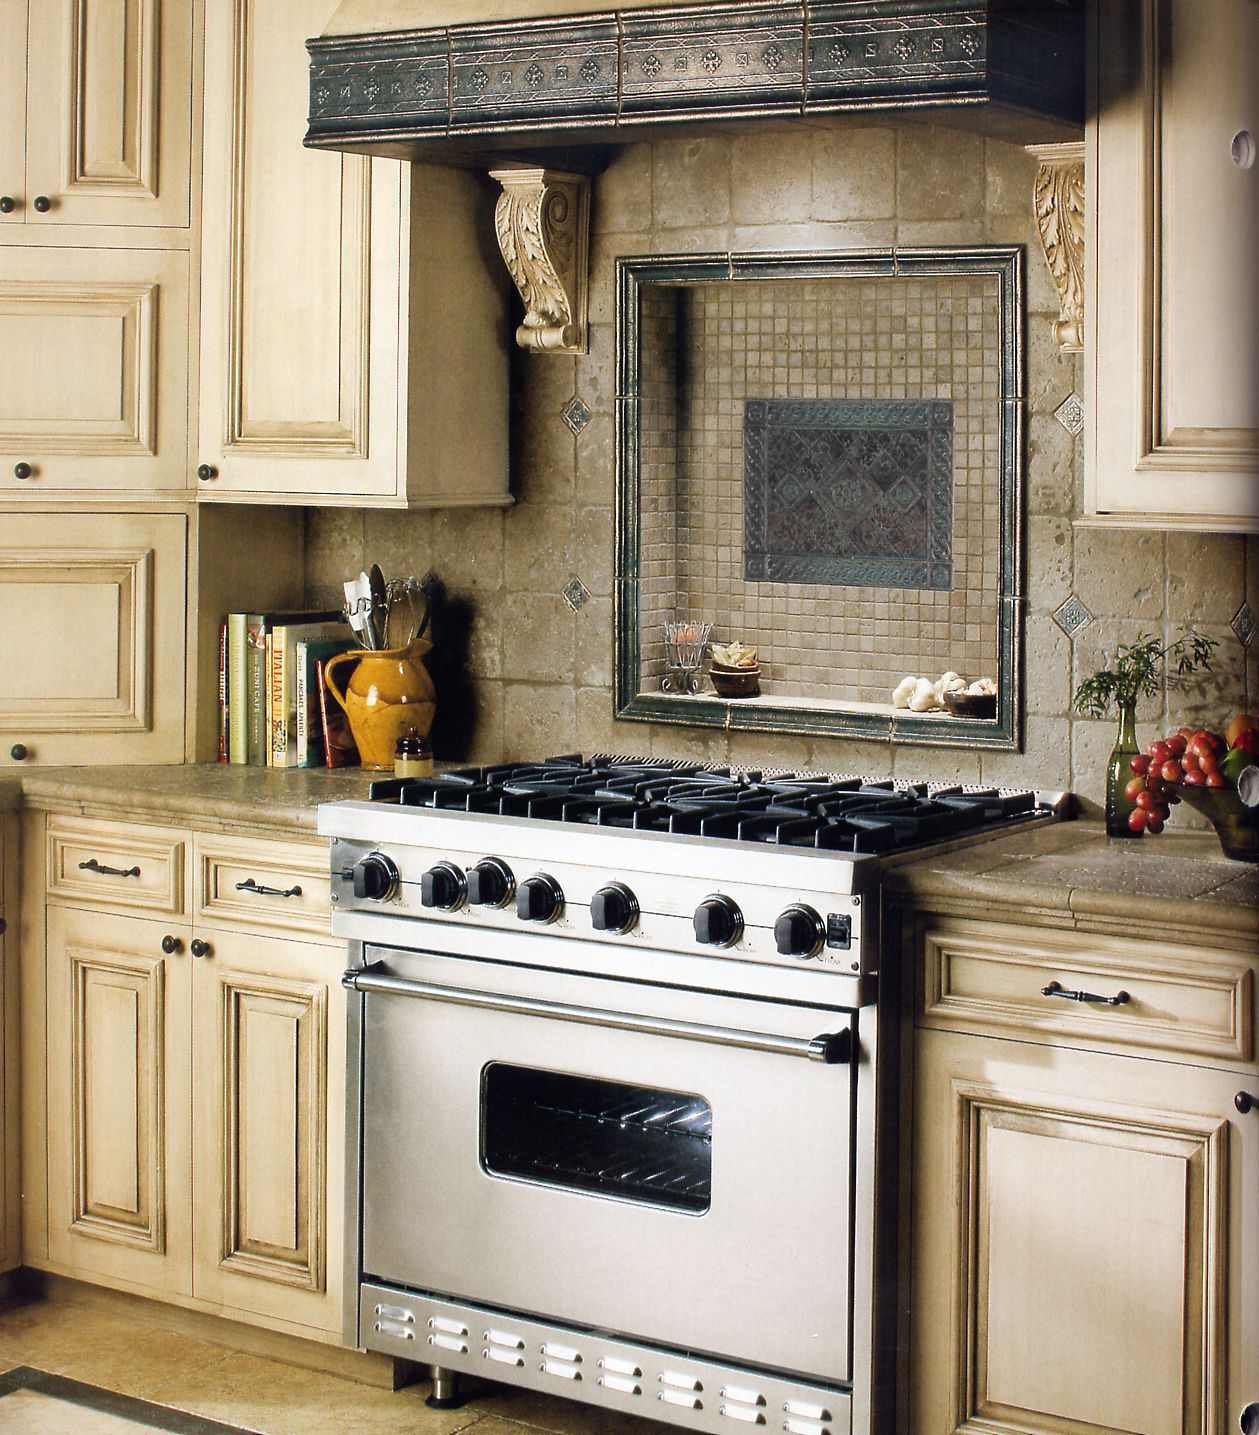 kitchen hood with regard to kitchen vent hood inserts how to install ductless range kitche on kitchen id=22913